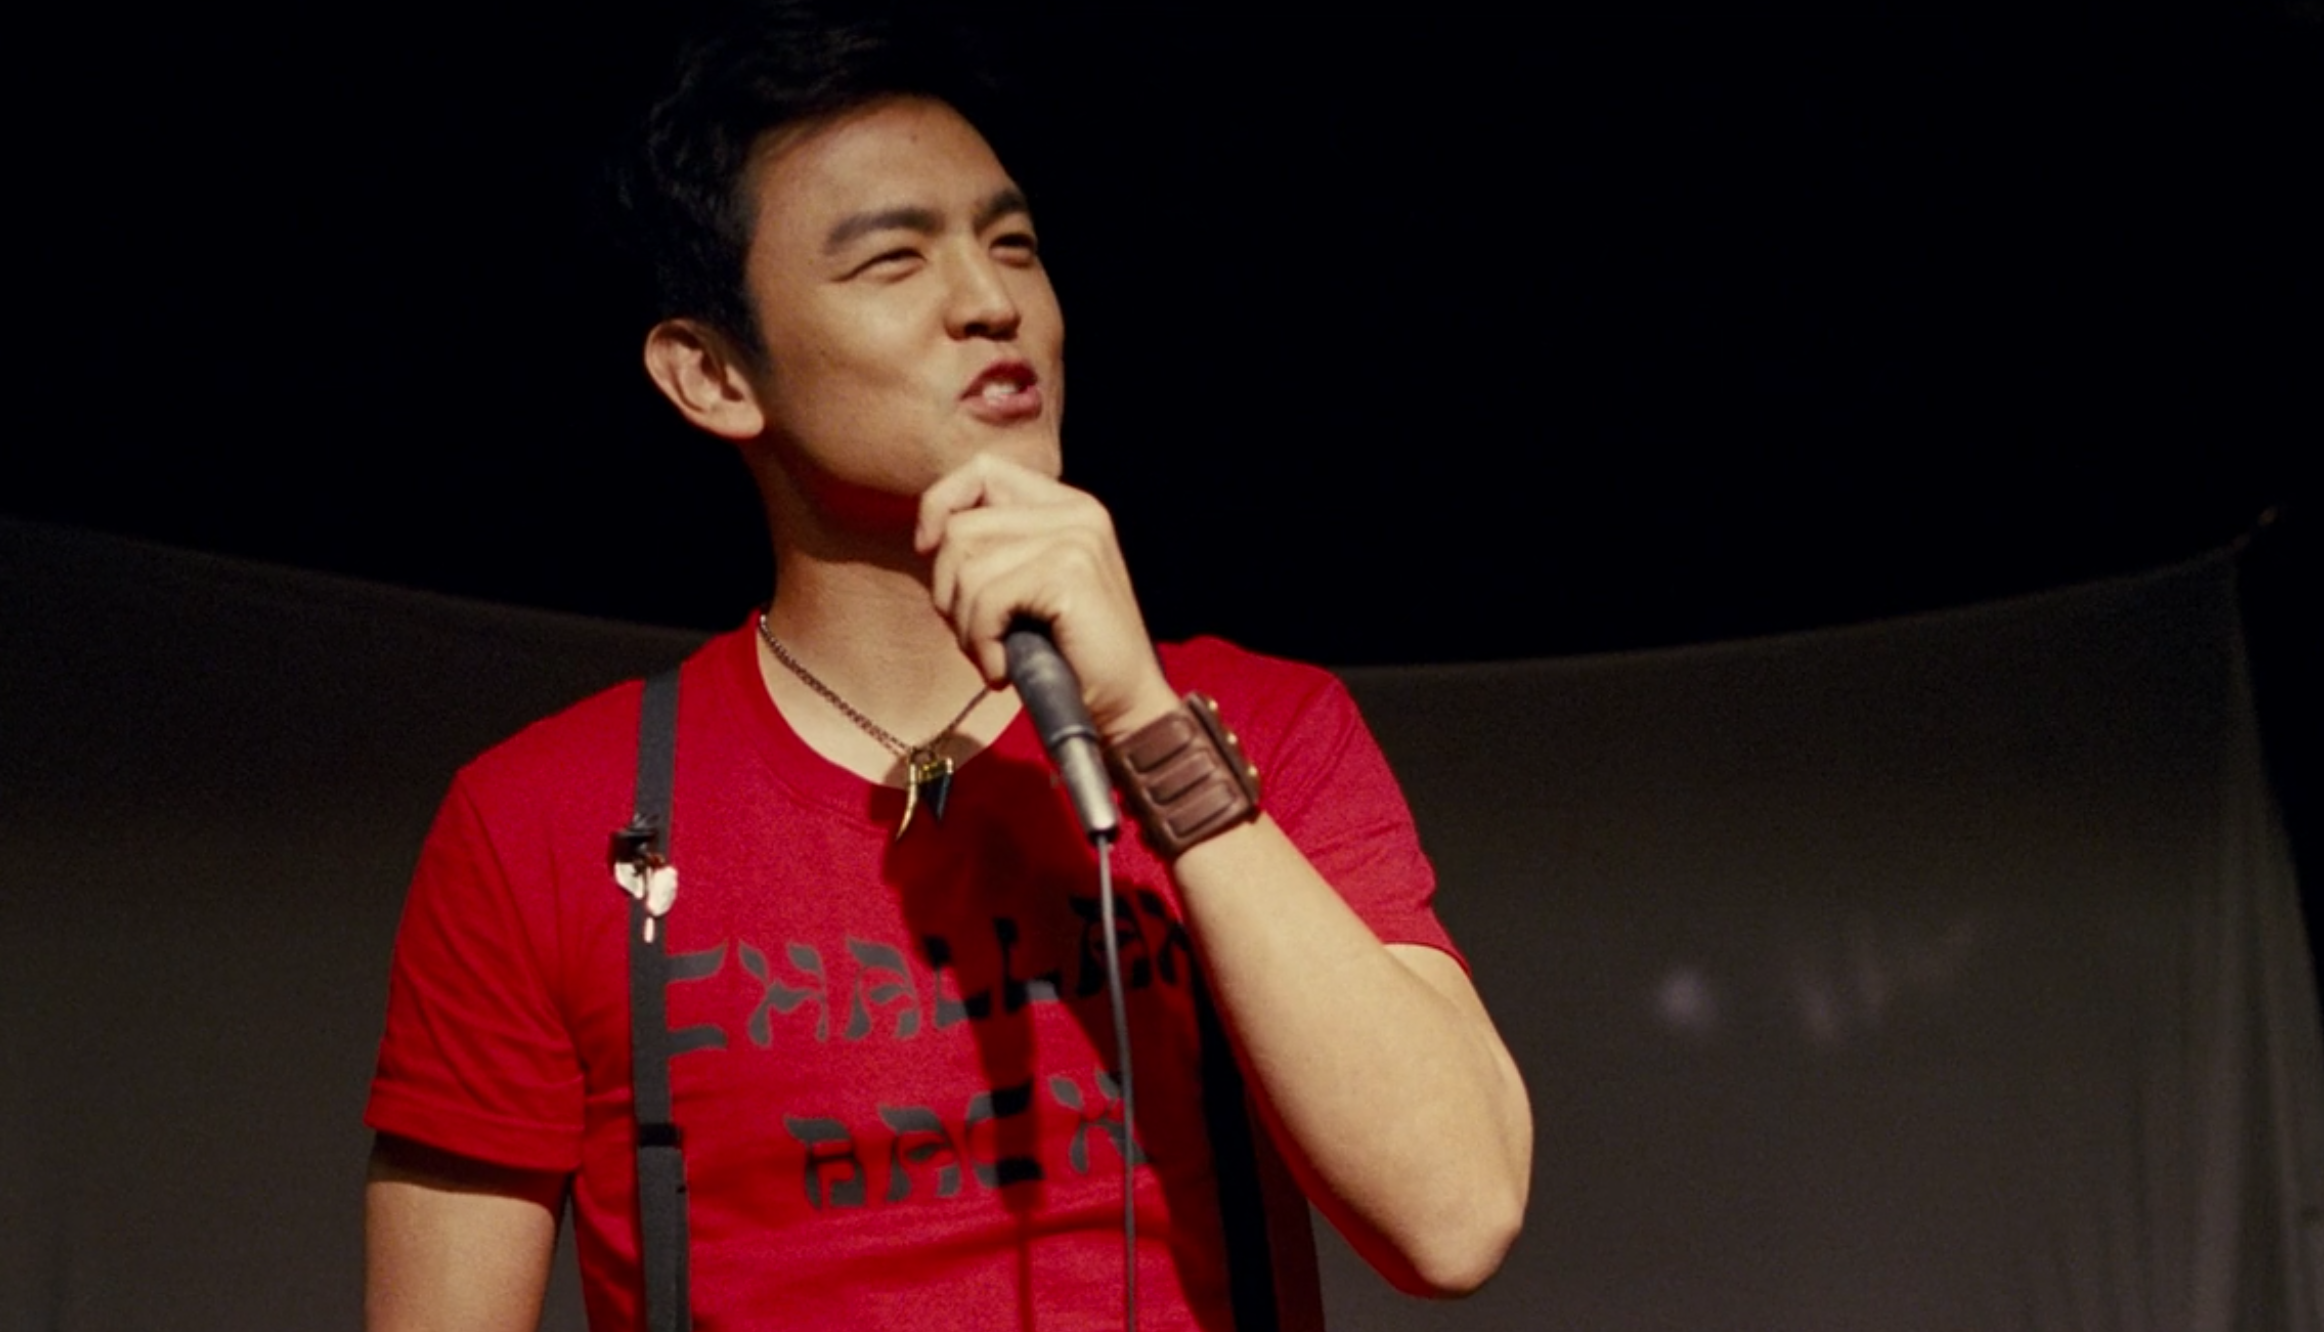 John Cho in Nick & Norah's Infinite Playlist